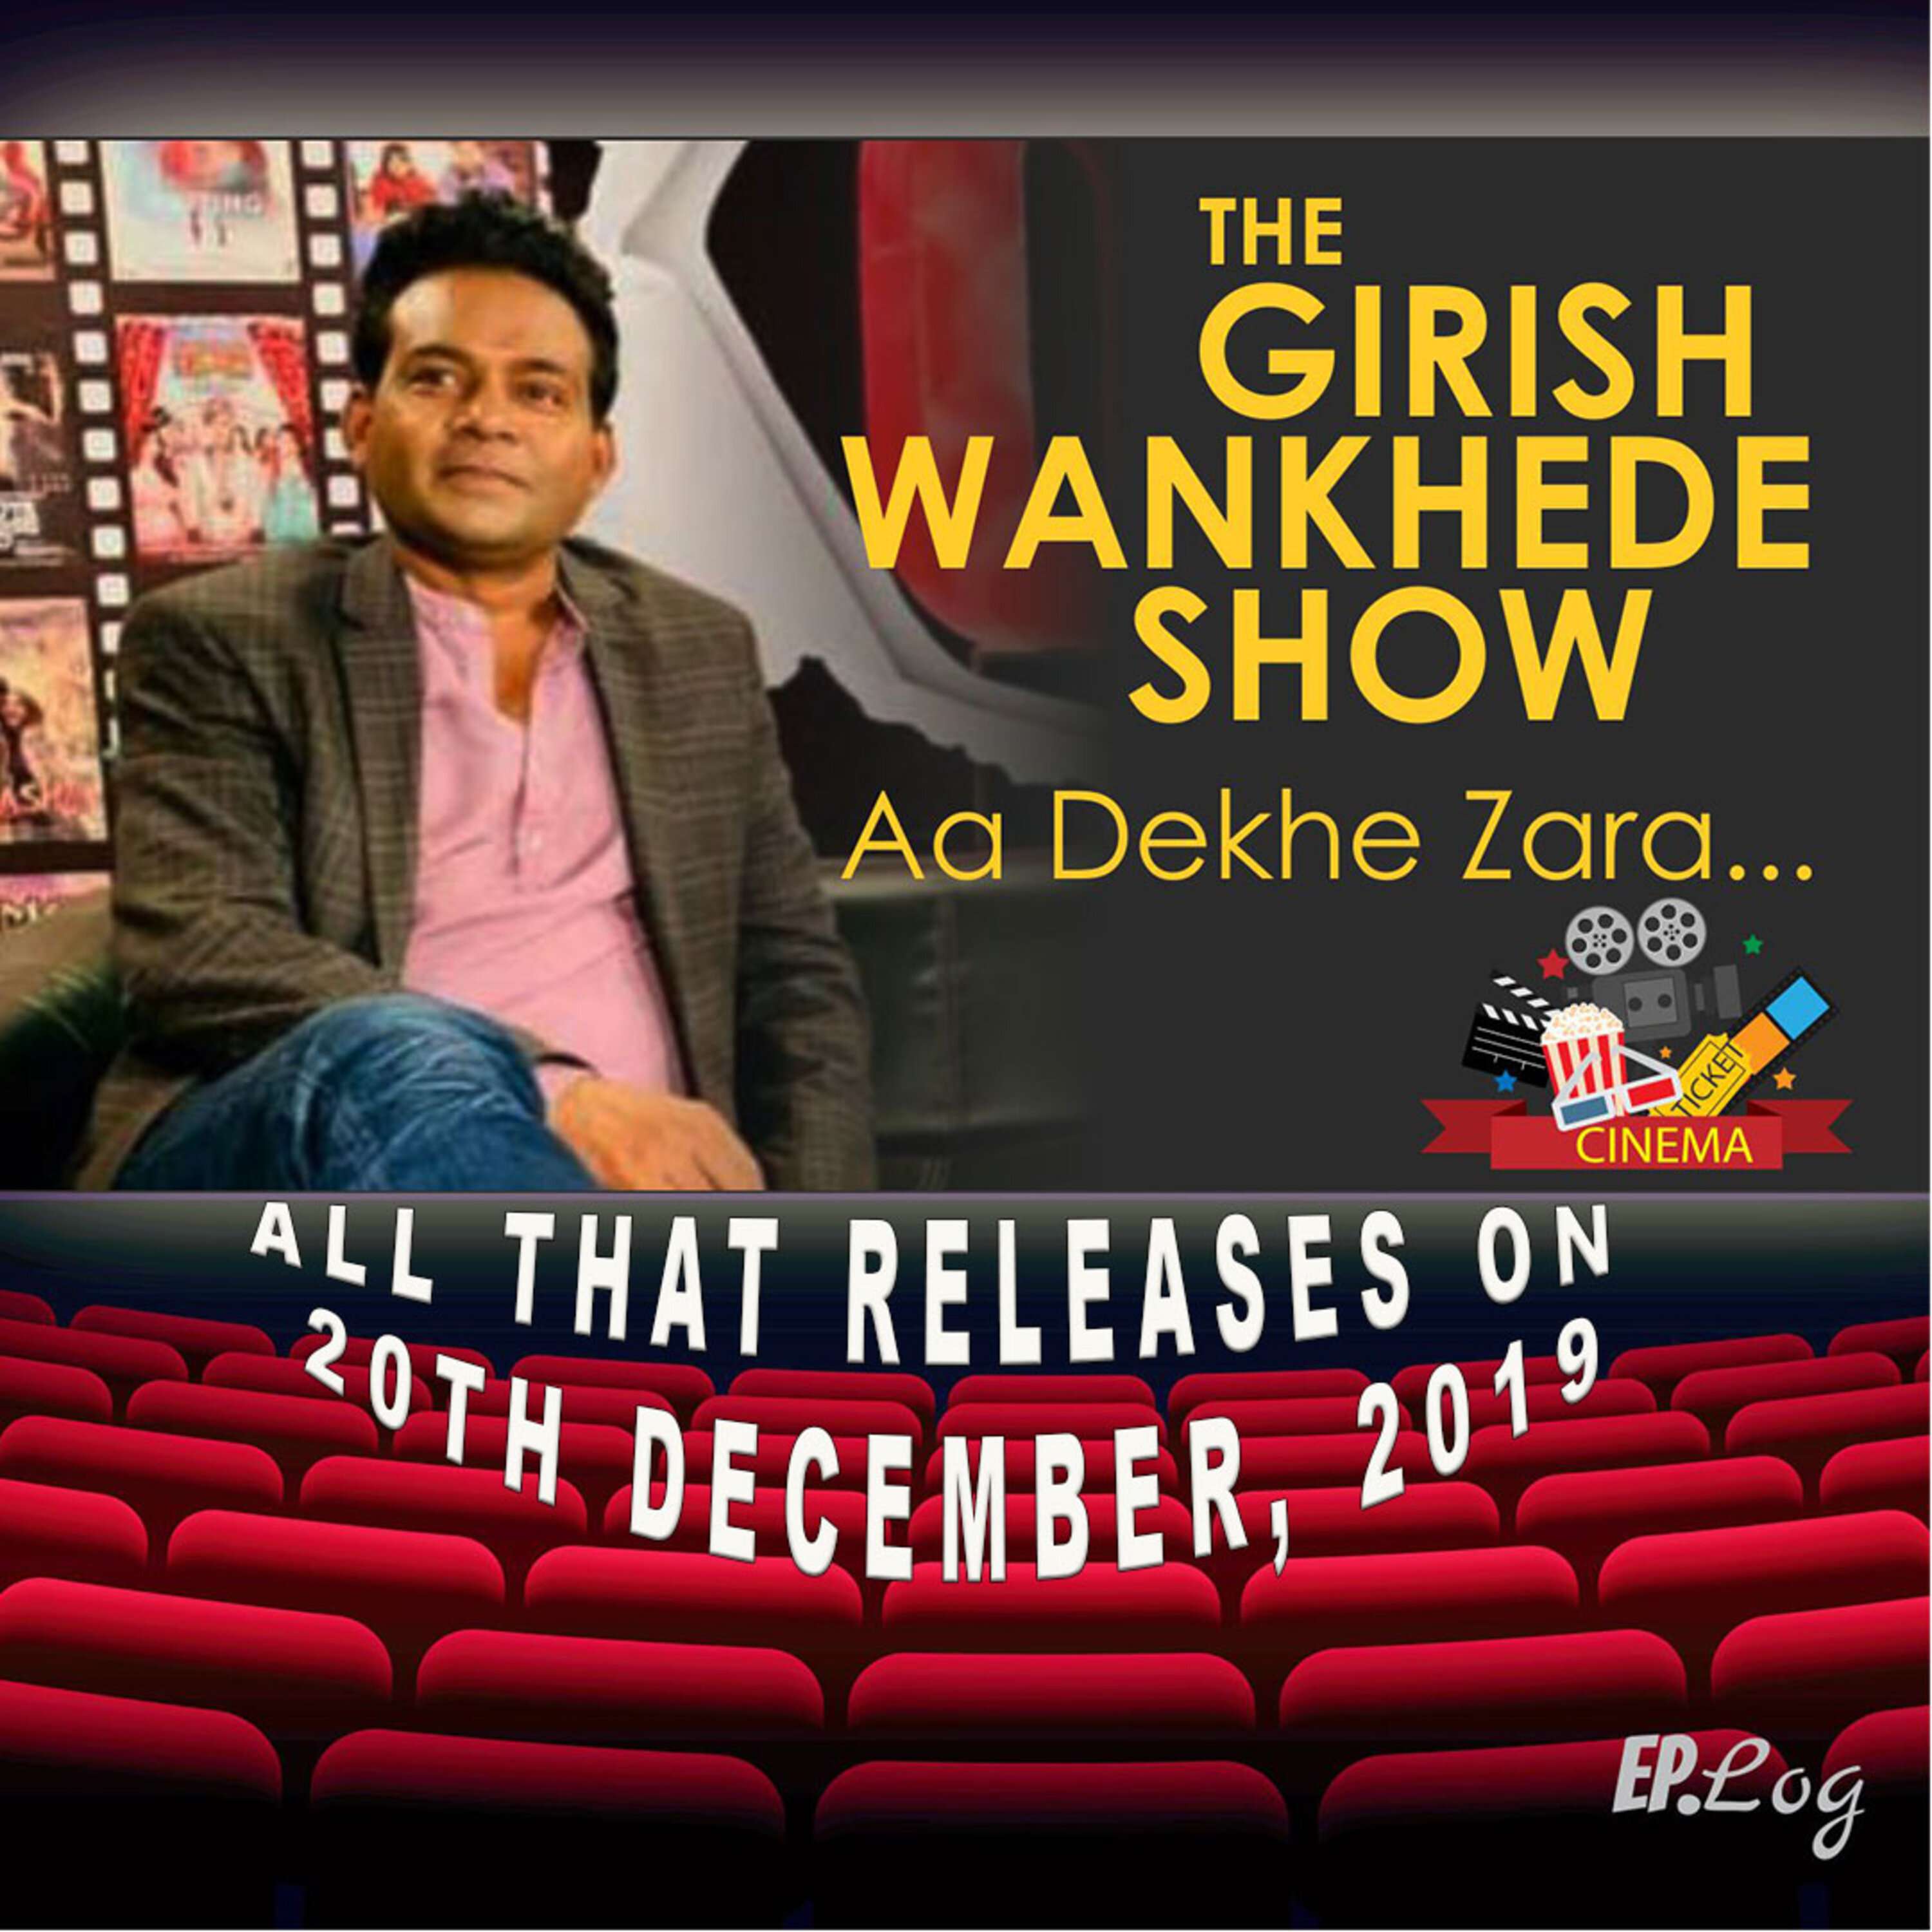 All That Releases on 20th December 2019 & Analysis